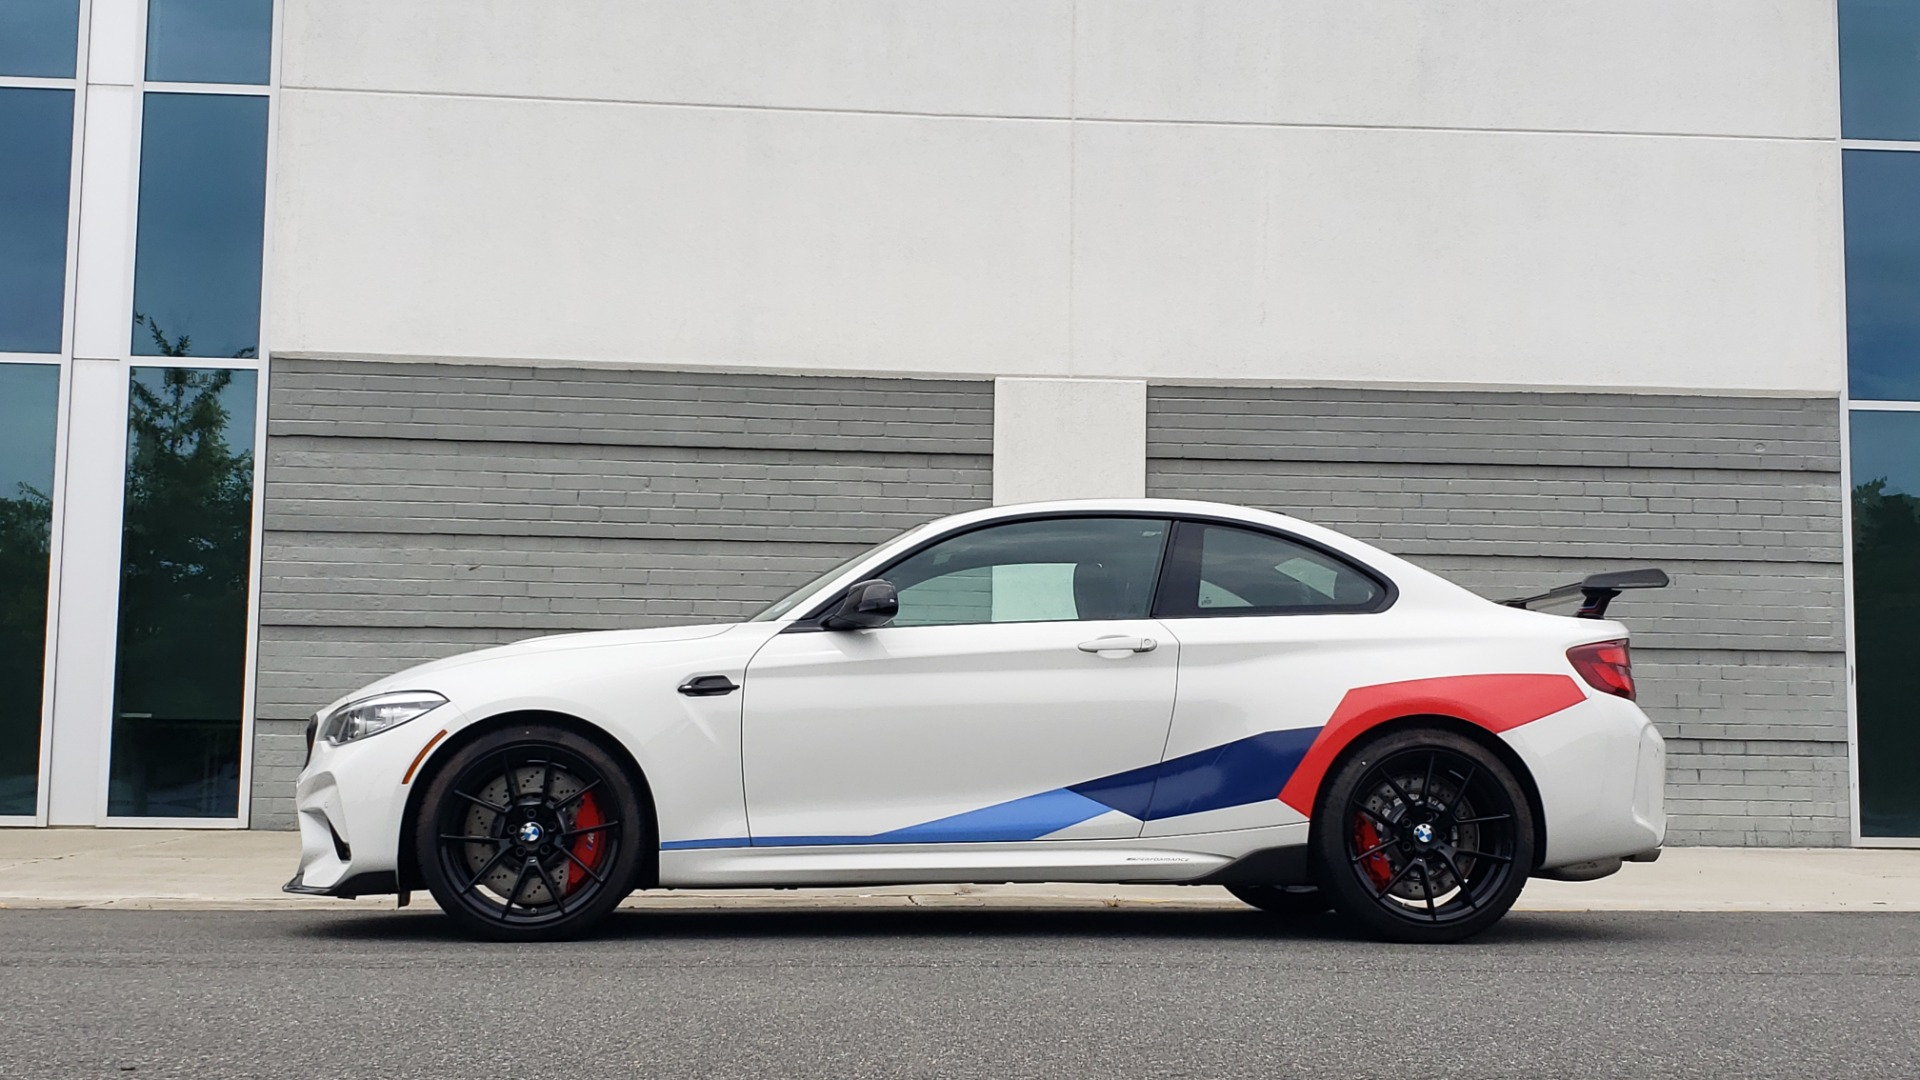 Used 2020 BMW M2 CS COMPETITION 405HP / COUPE / MANUAL / NAV / H/K SOUND / REARVIEW for sale $105,995 at Formula Imports in Charlotte NC 28227 4